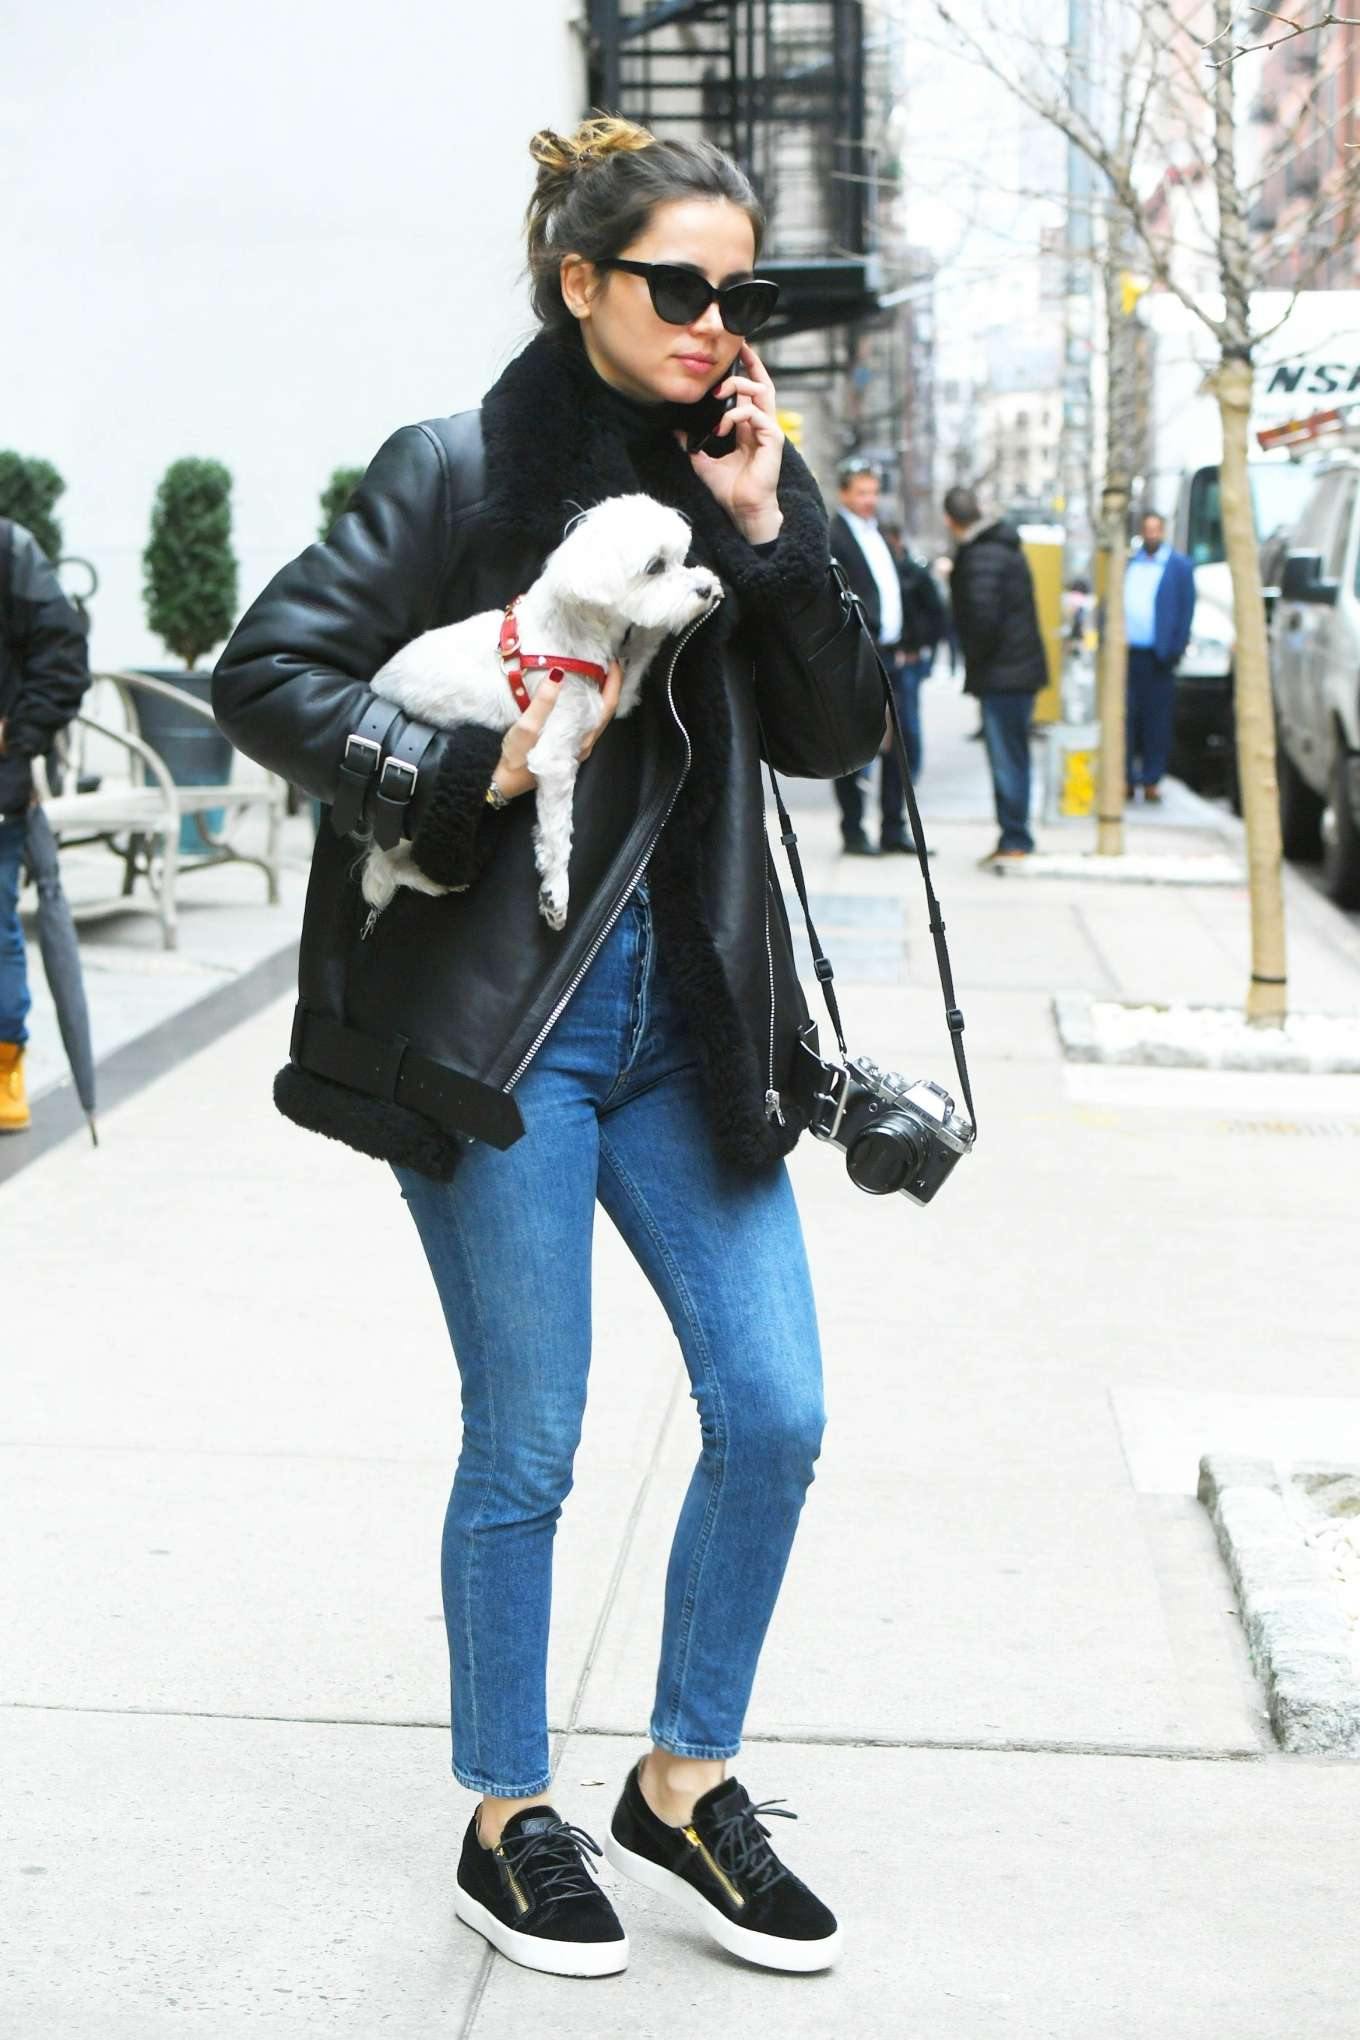 Ana De Armas in a White Sneakers Goes Out for Lunch with